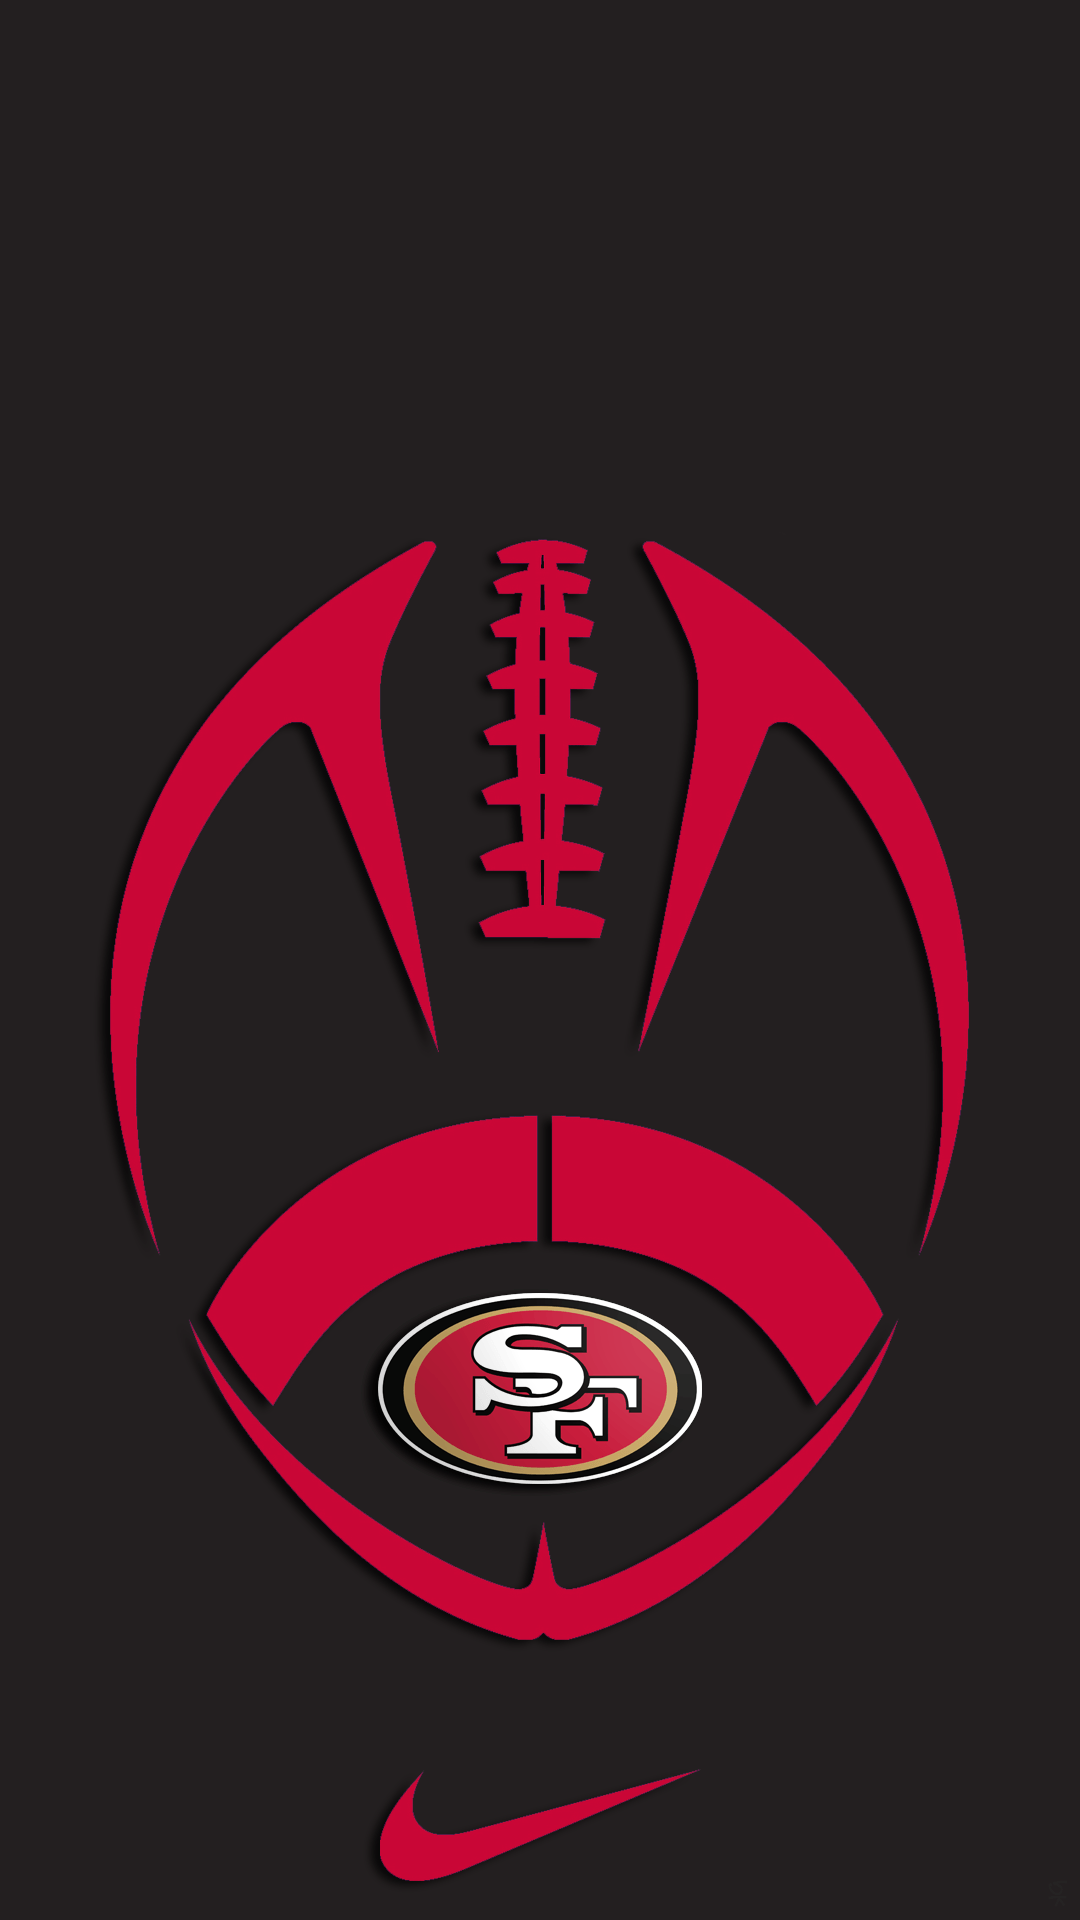 49ers wallpapers 2017 wallpaper cave iphone 6 plus wallpaper request thread page 144 macrumors forums voltagebd Images